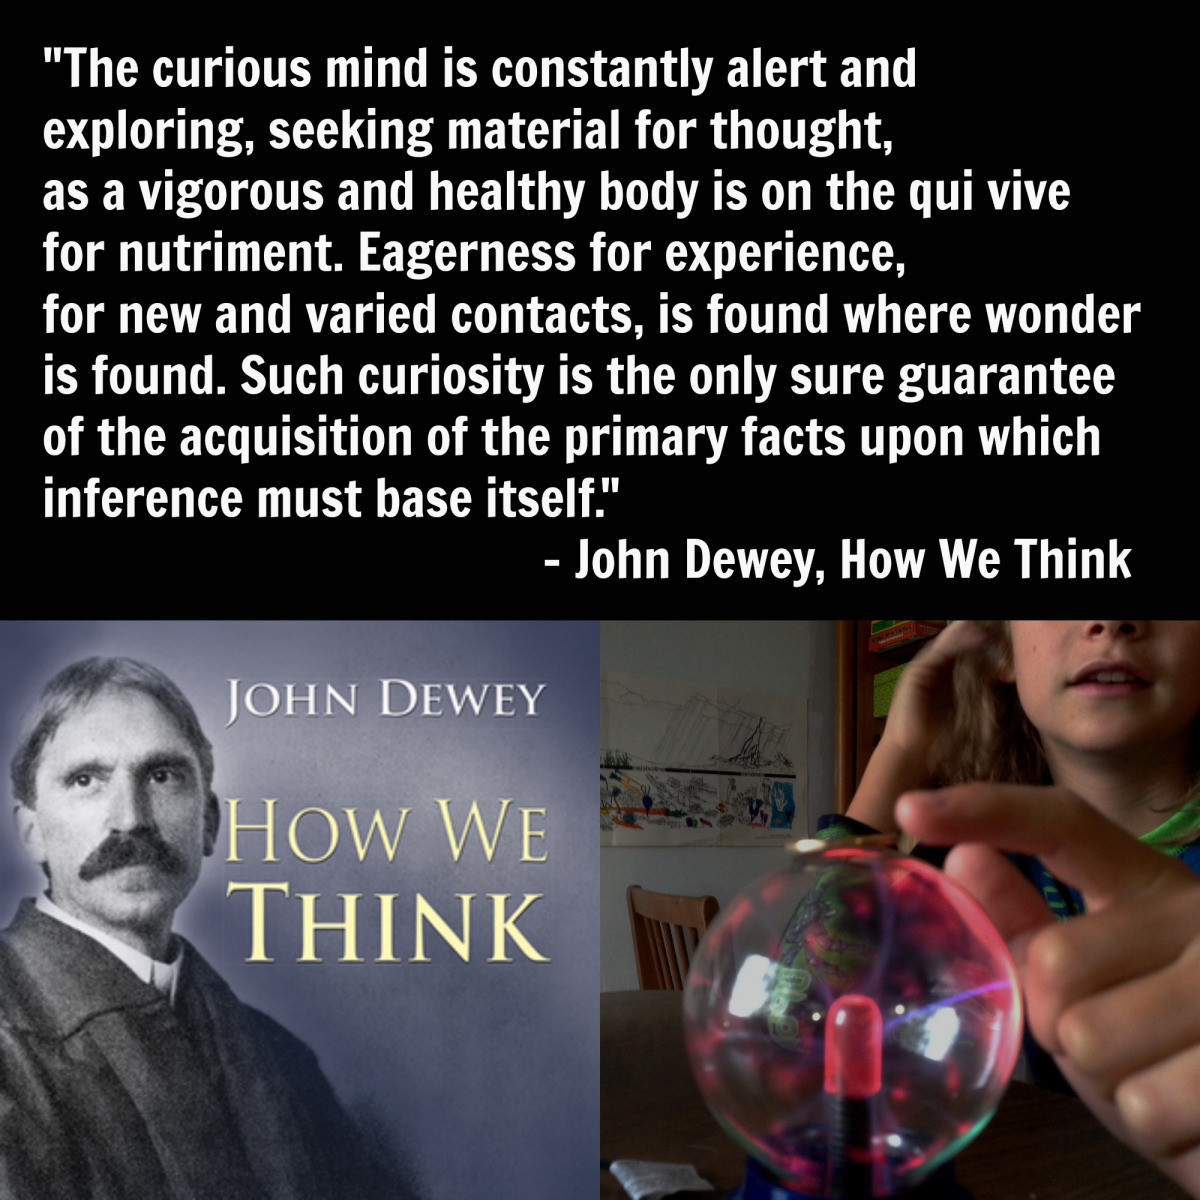 John Dewey Quotes On Education  Quote This John Dewey on the curious mind